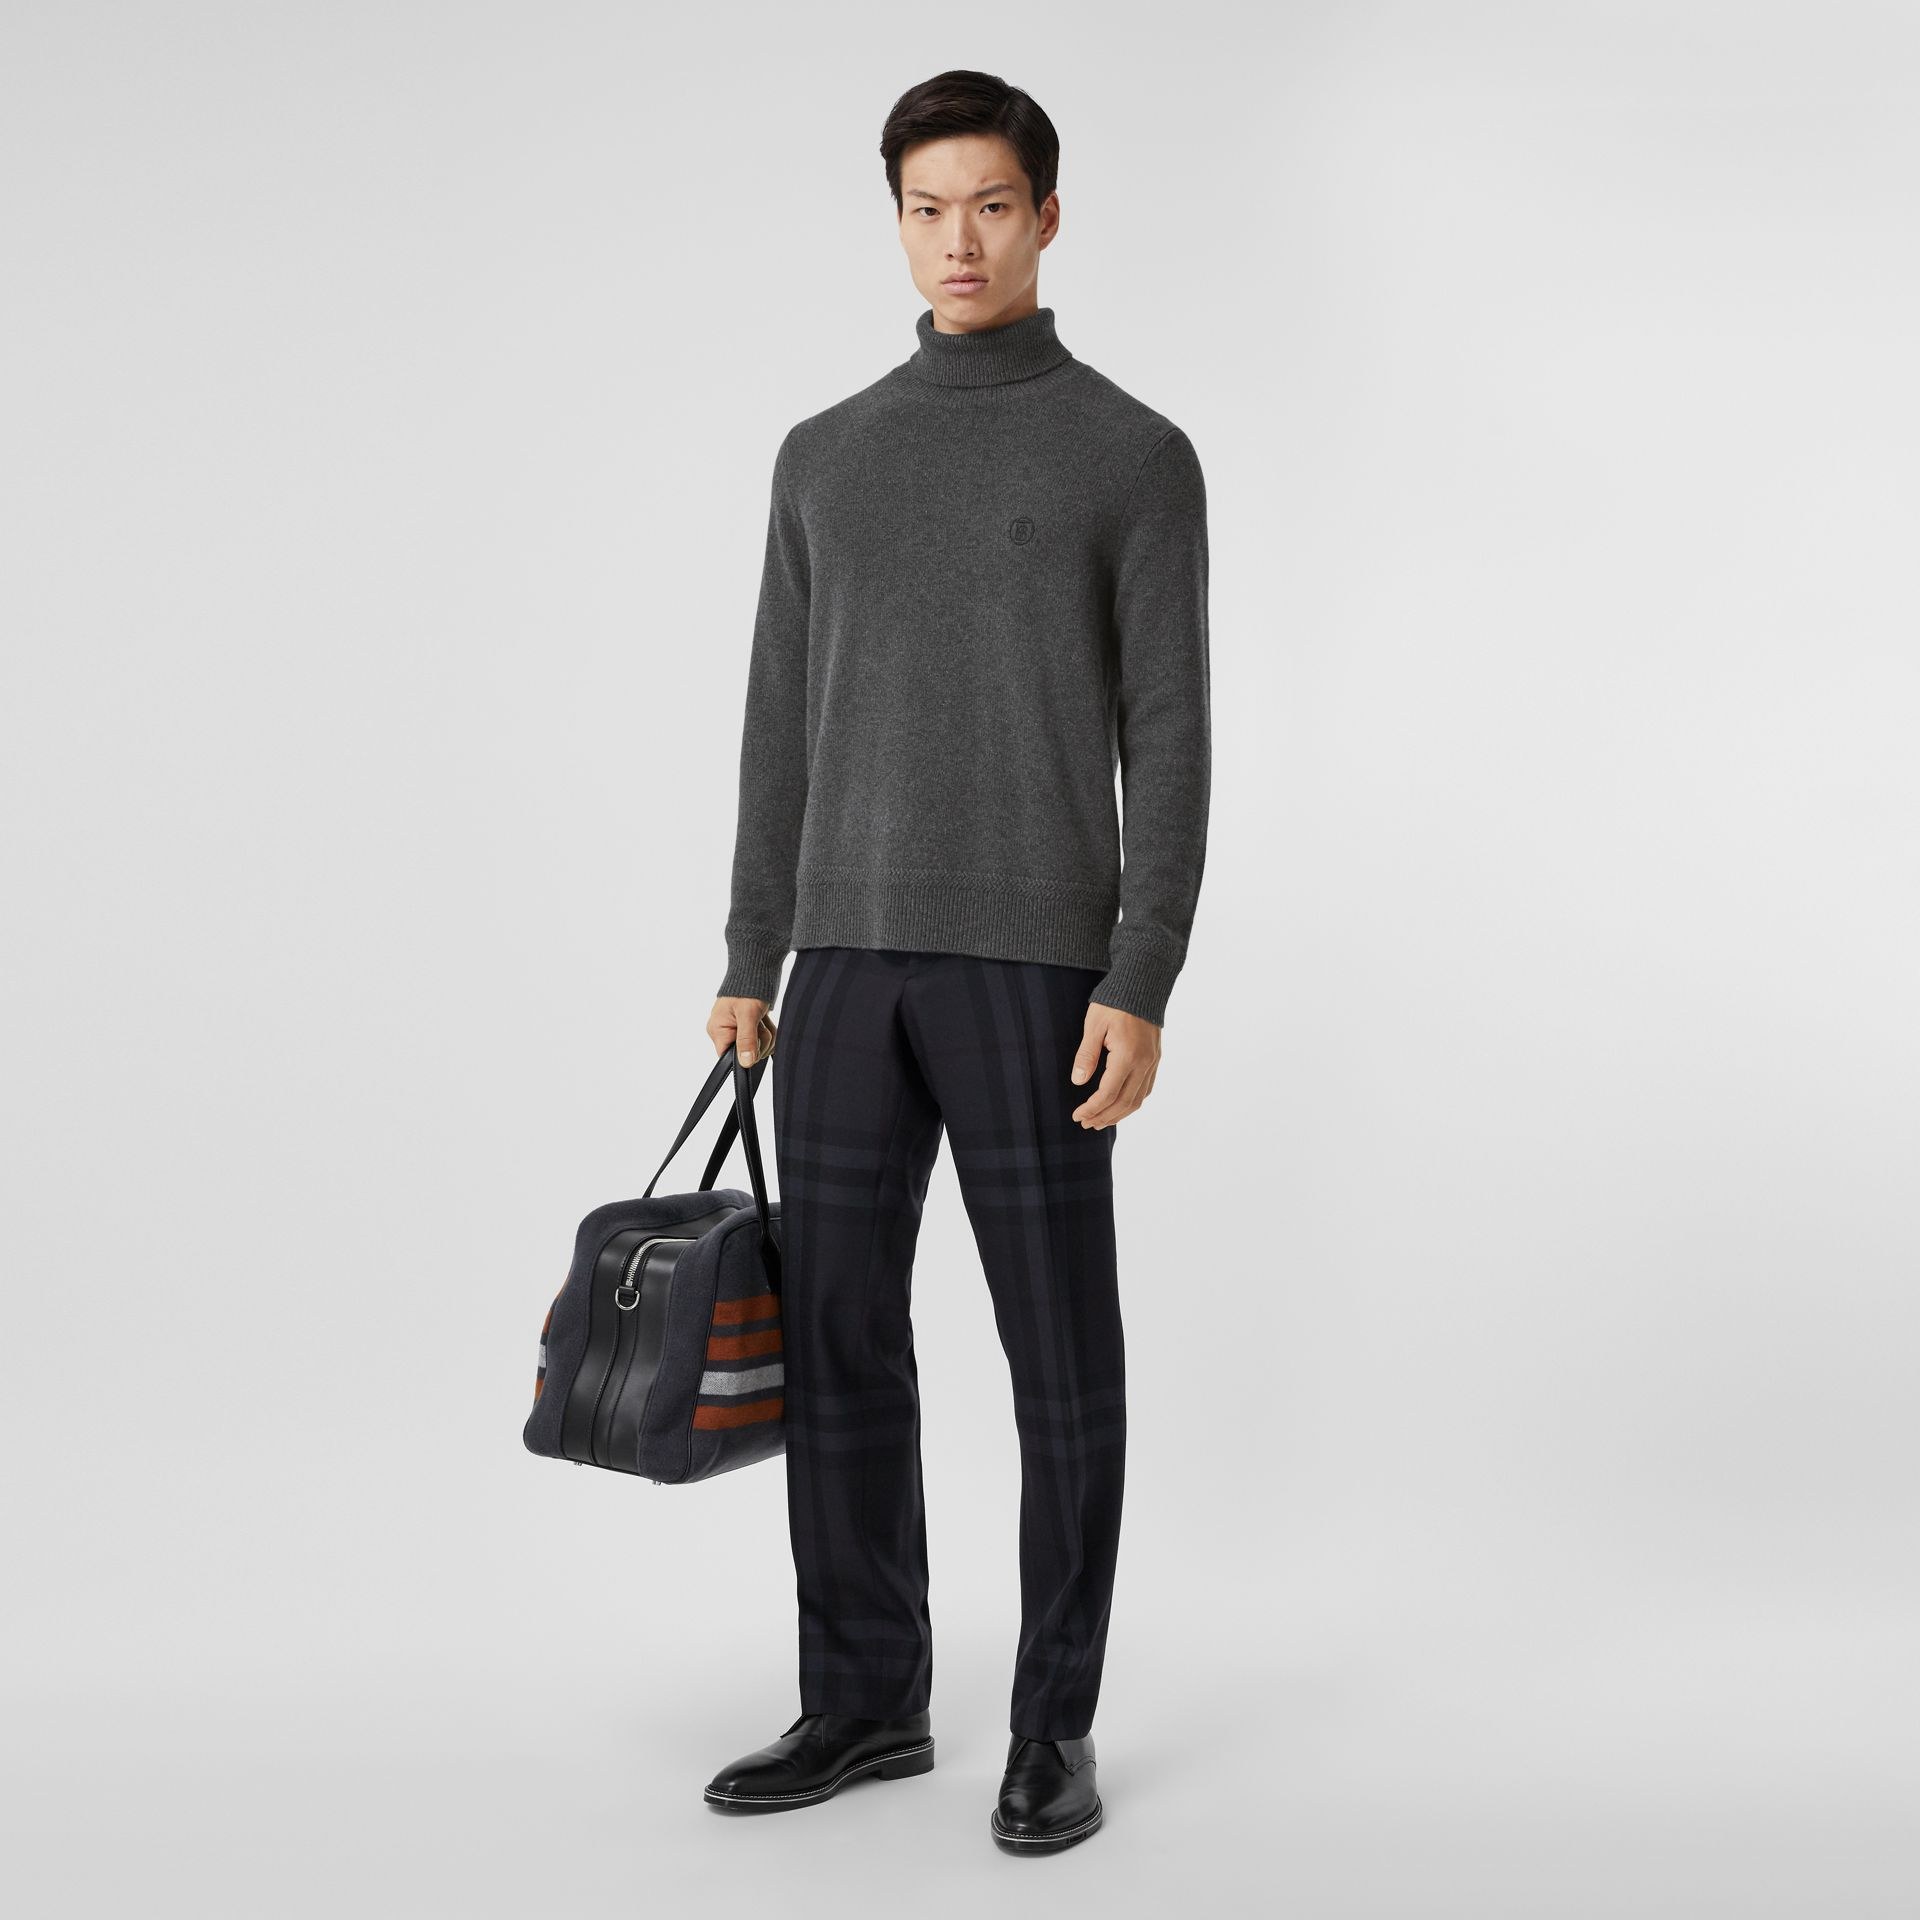 Monogram Motif Cashmere Roll-neck Sweater in Charcoal - Men | Burberry - gallery image 5